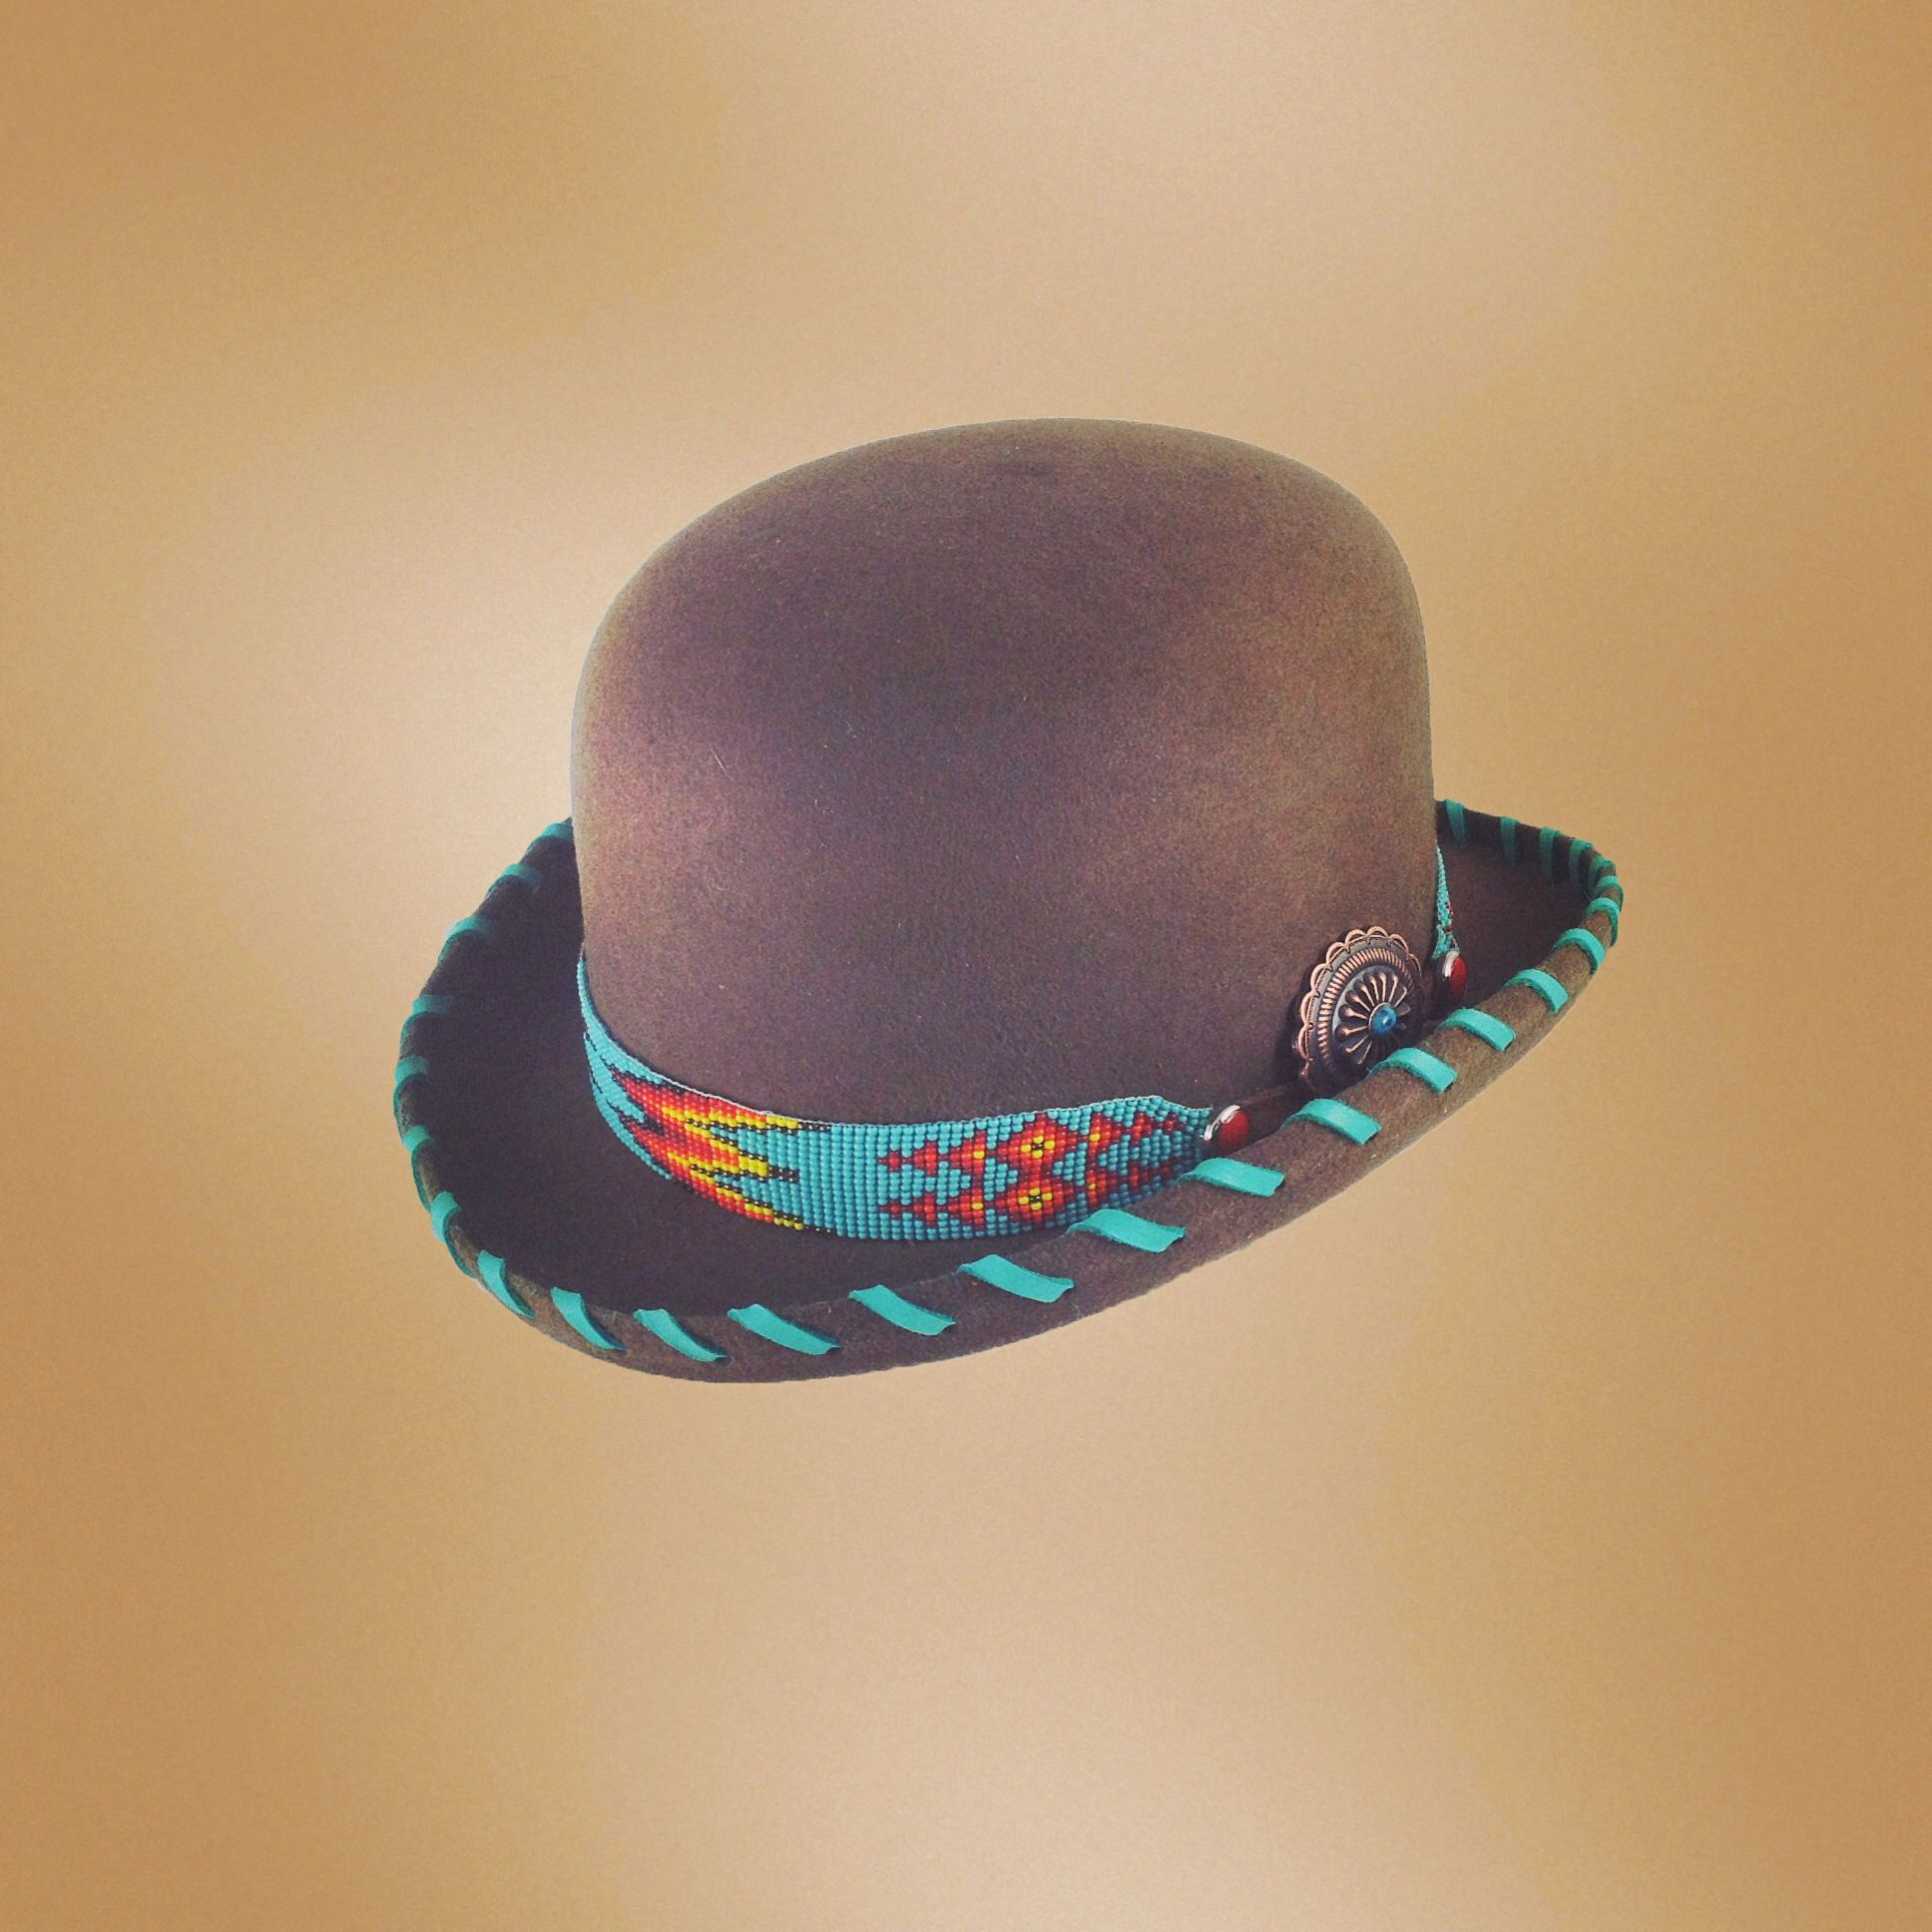 80bca966 Brown felt bowler hat with beaded hatband and deerskin lacing - Red Star  Riggings